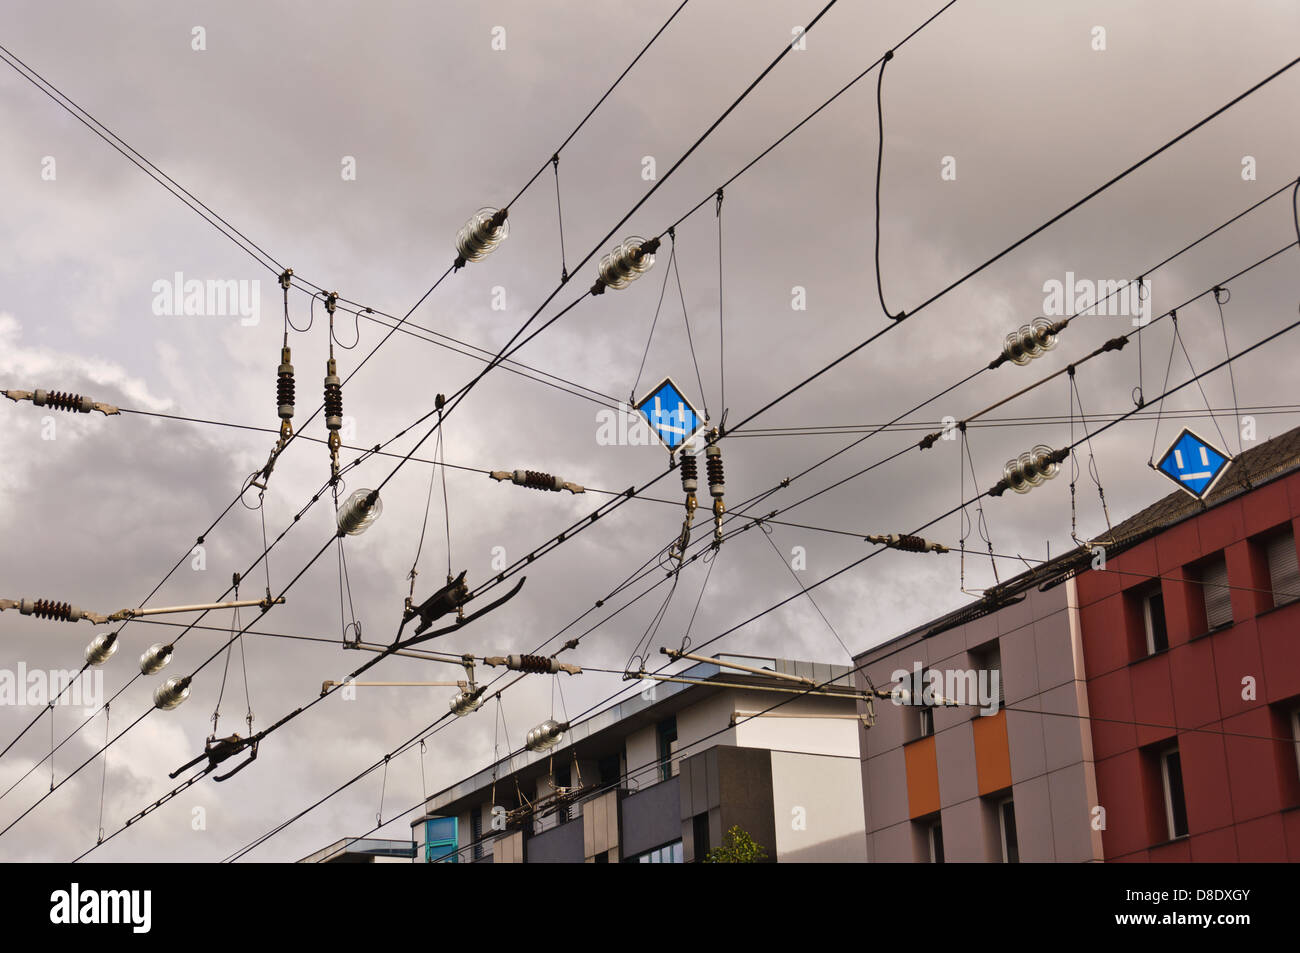 Catenary, contact wires, against thunderstorm and rain clouds Stock Photo